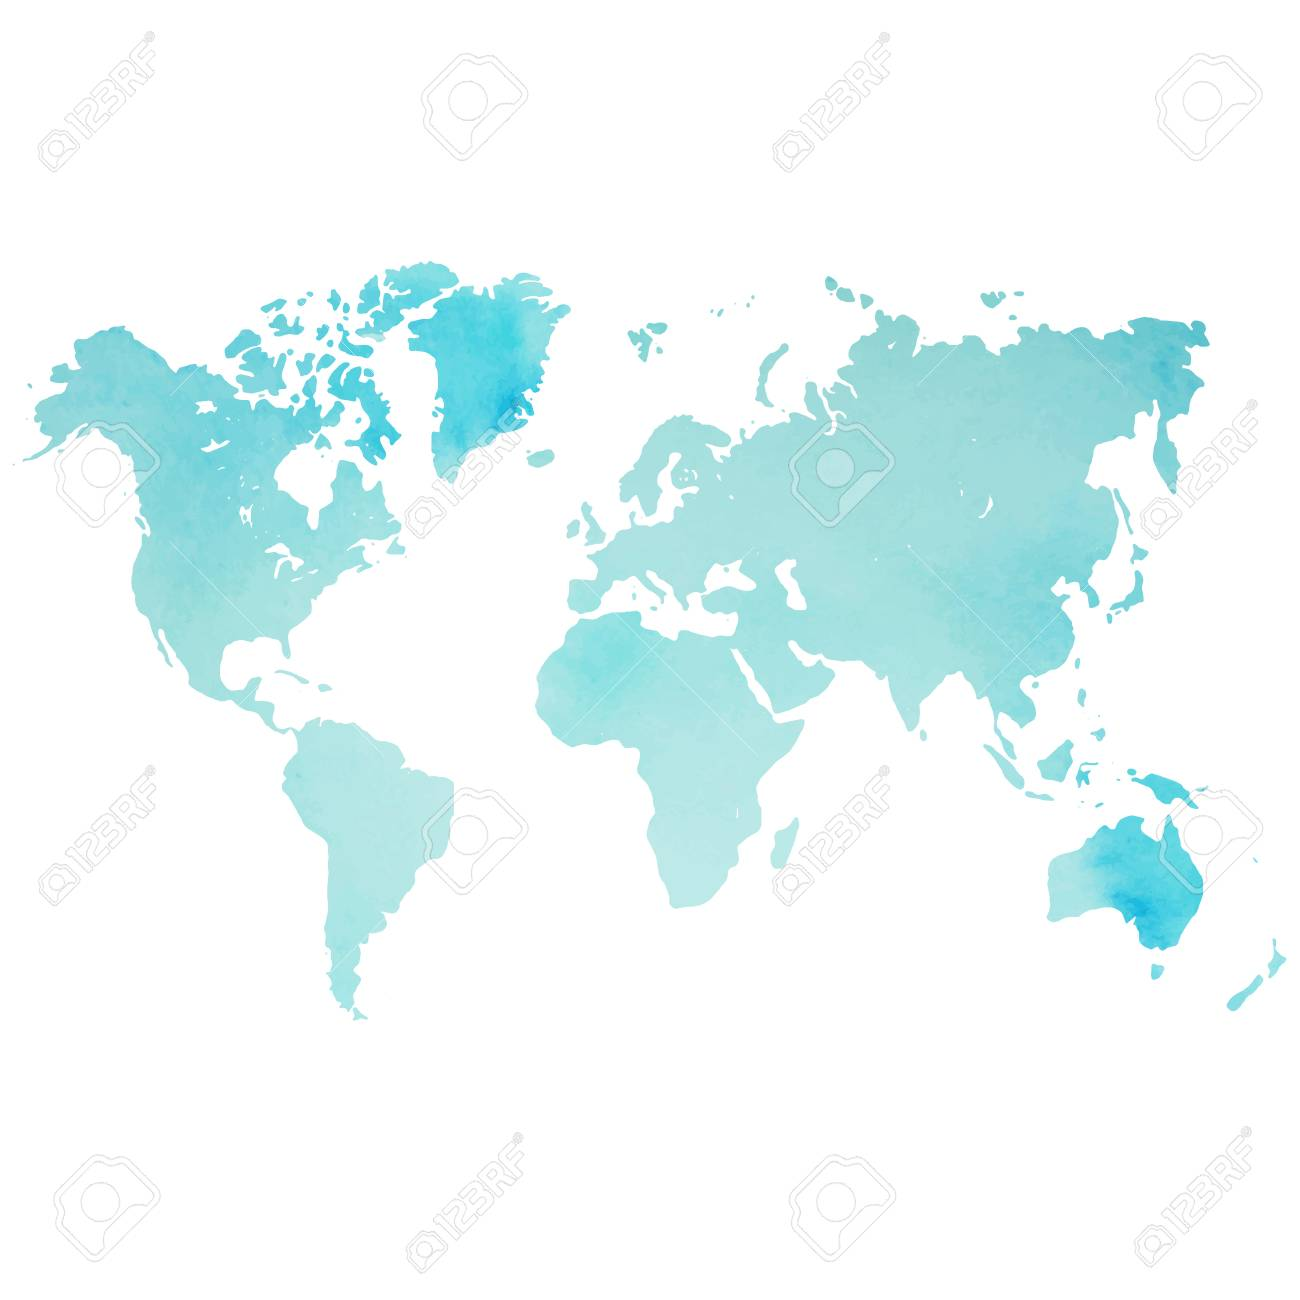 Map Of World Vector.Watercolor World Map In Vector Royalty Free Cliparts Vectors And